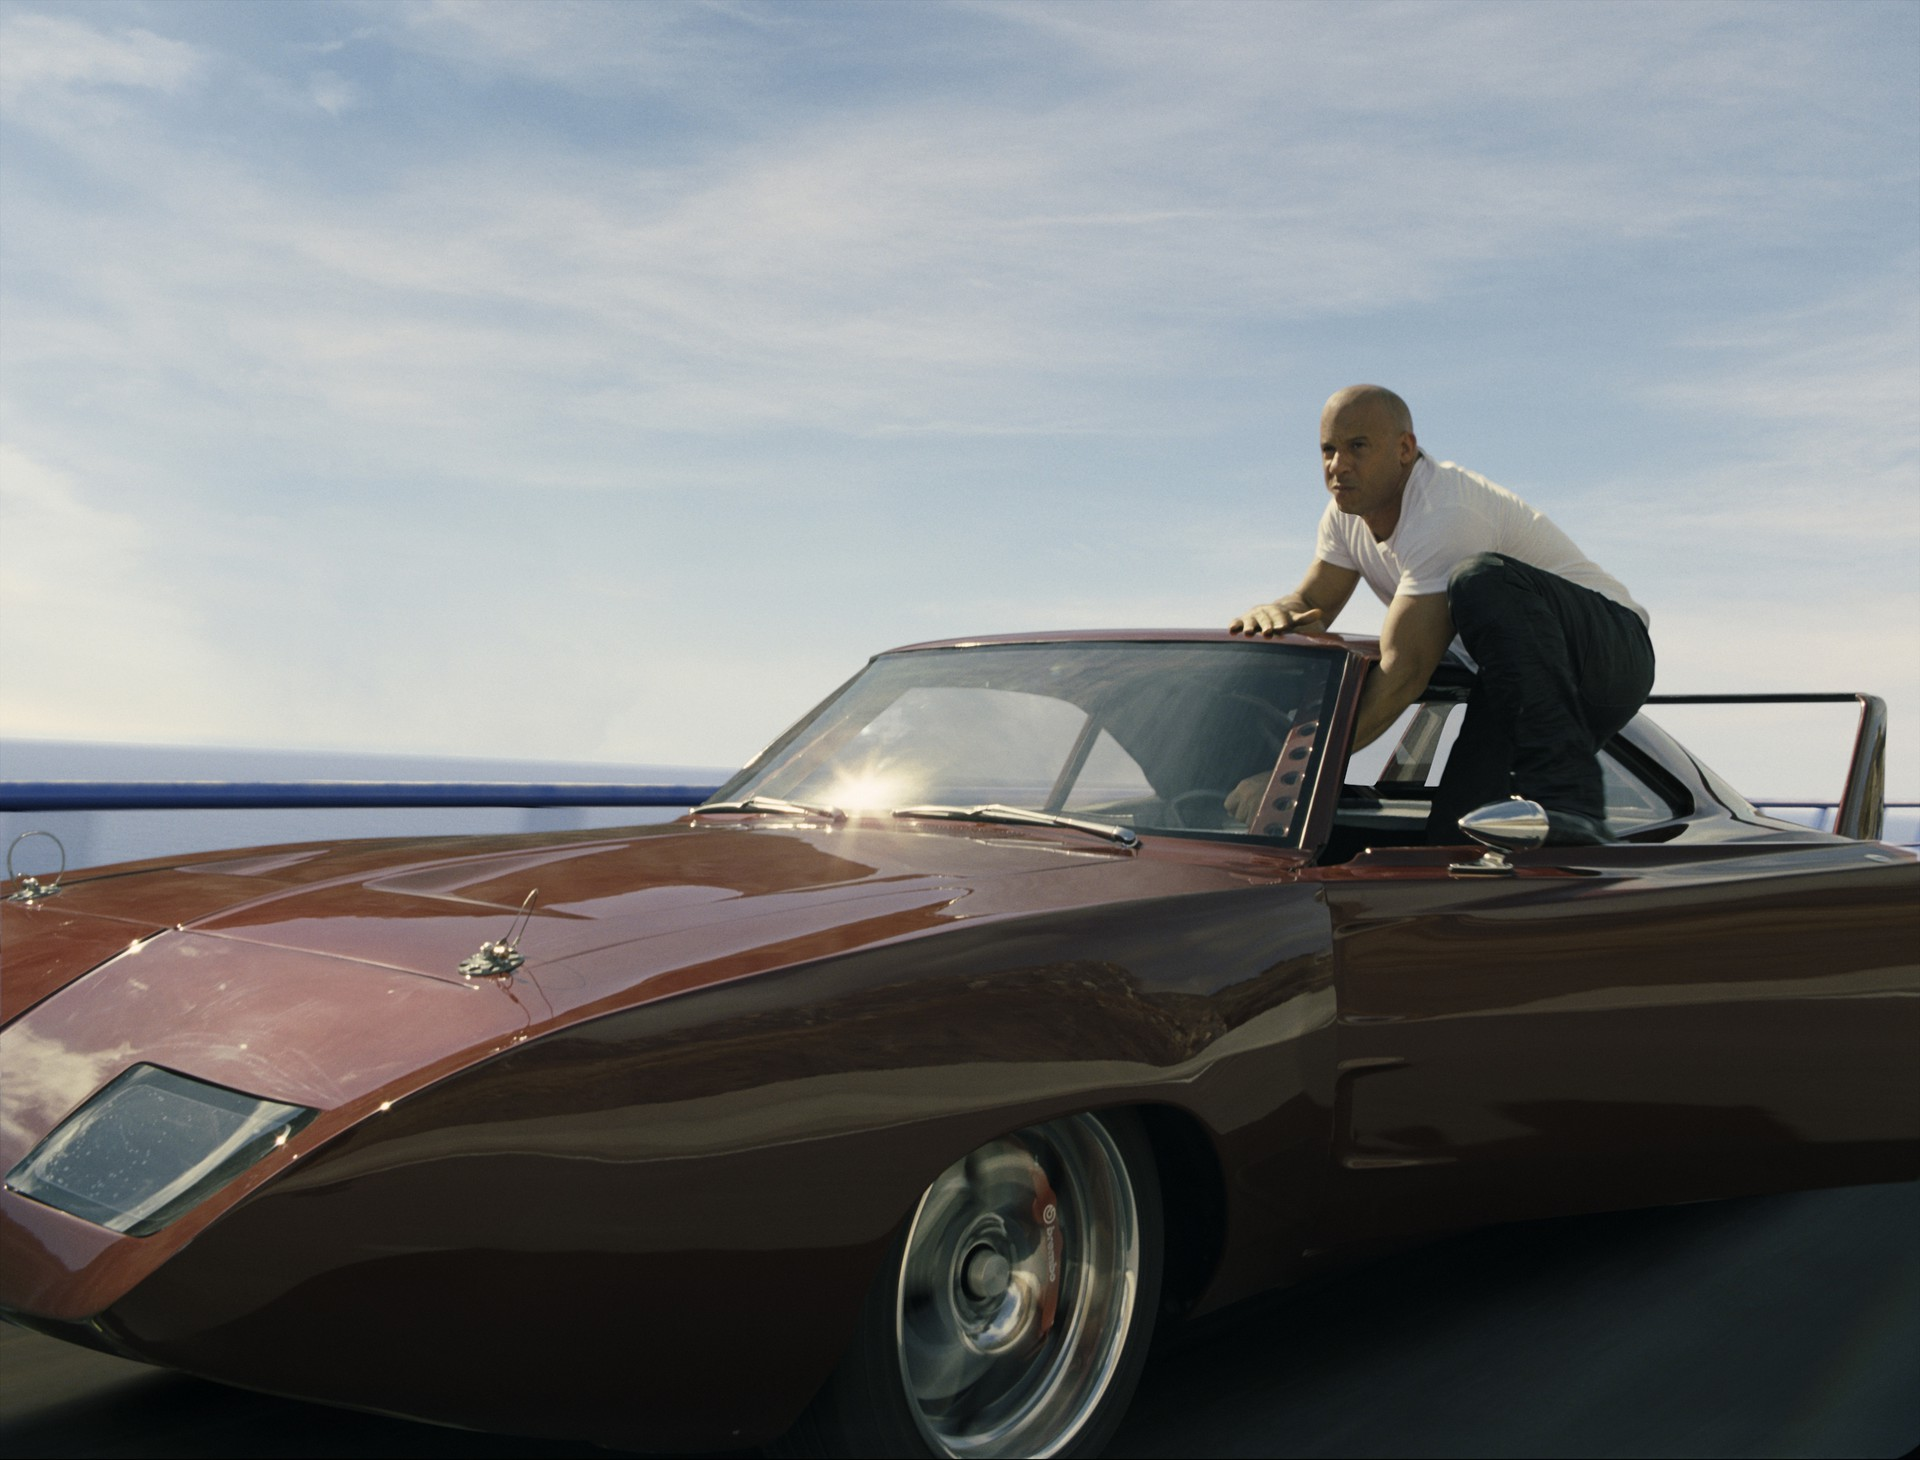 Vin Diesel Images Vin Diesel As Dom Toretto In Fast And Furious 6 Hd